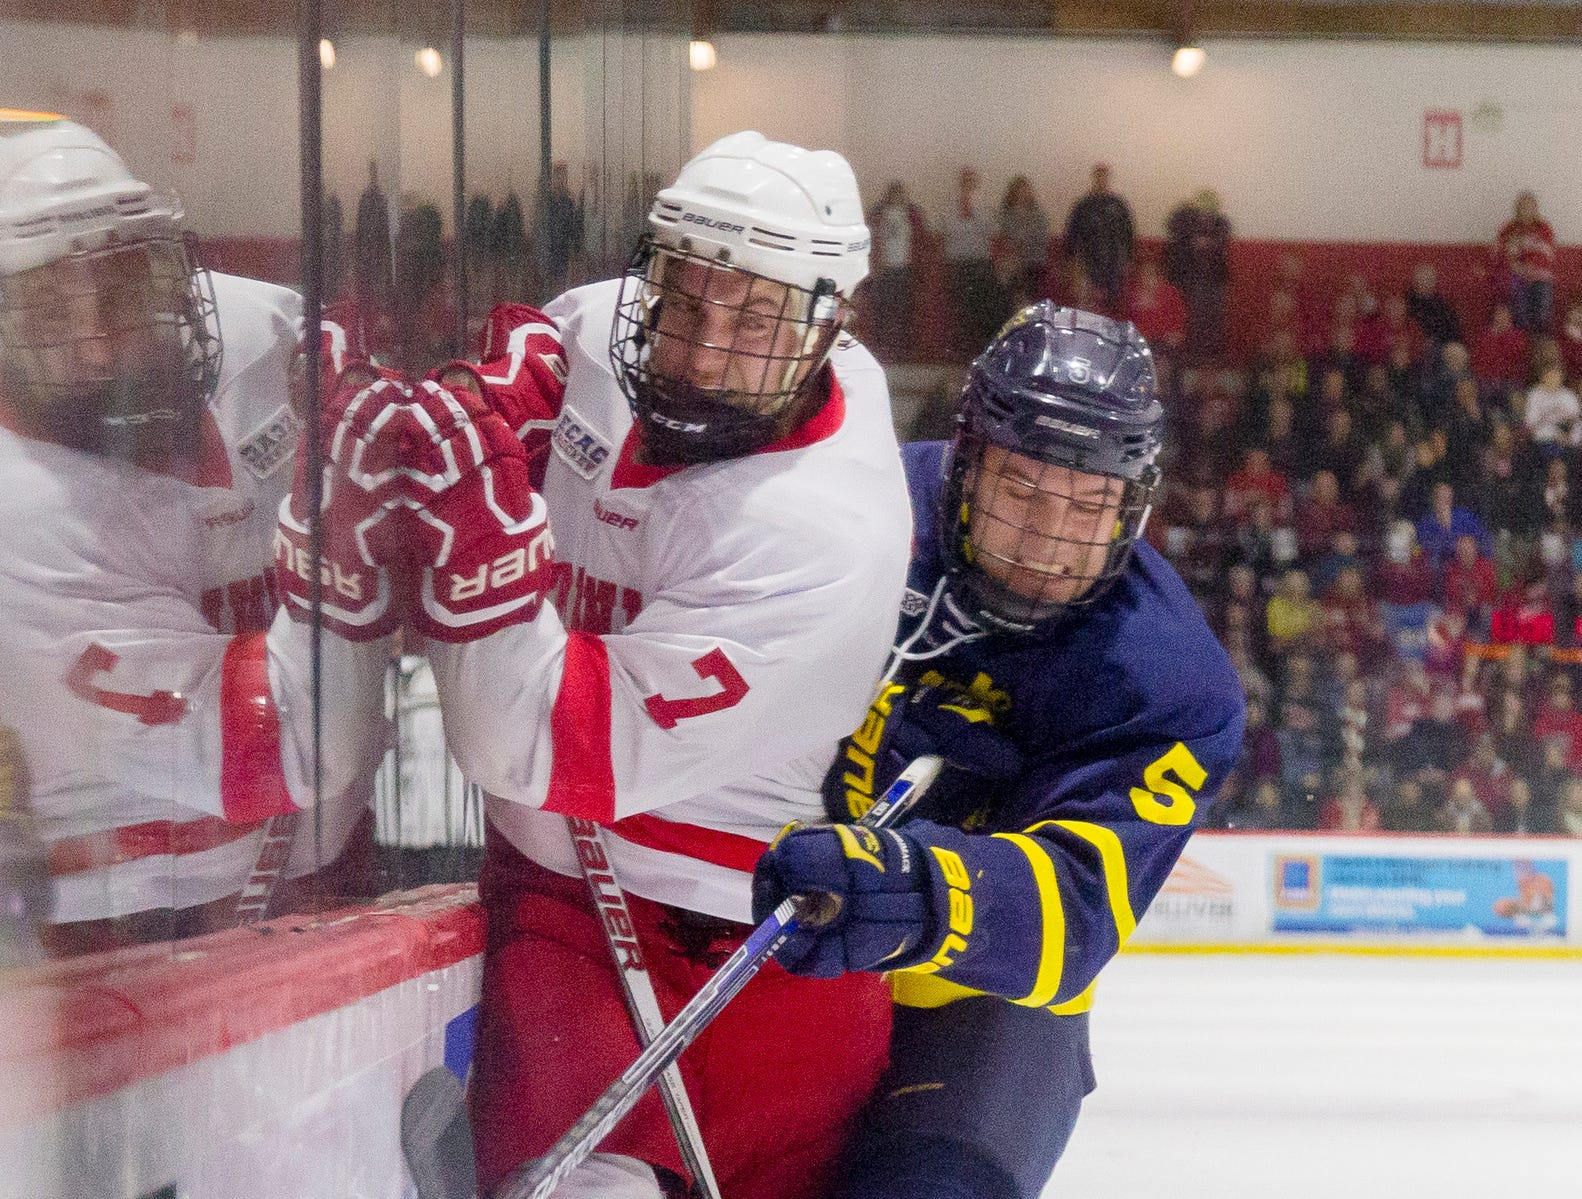 2016: Cornell junior forward Jake Weidner tussles for position along the boards during the third period of Cornell's 5-2 win over Merrimack at Lynah Rink on Saturday, January 9.